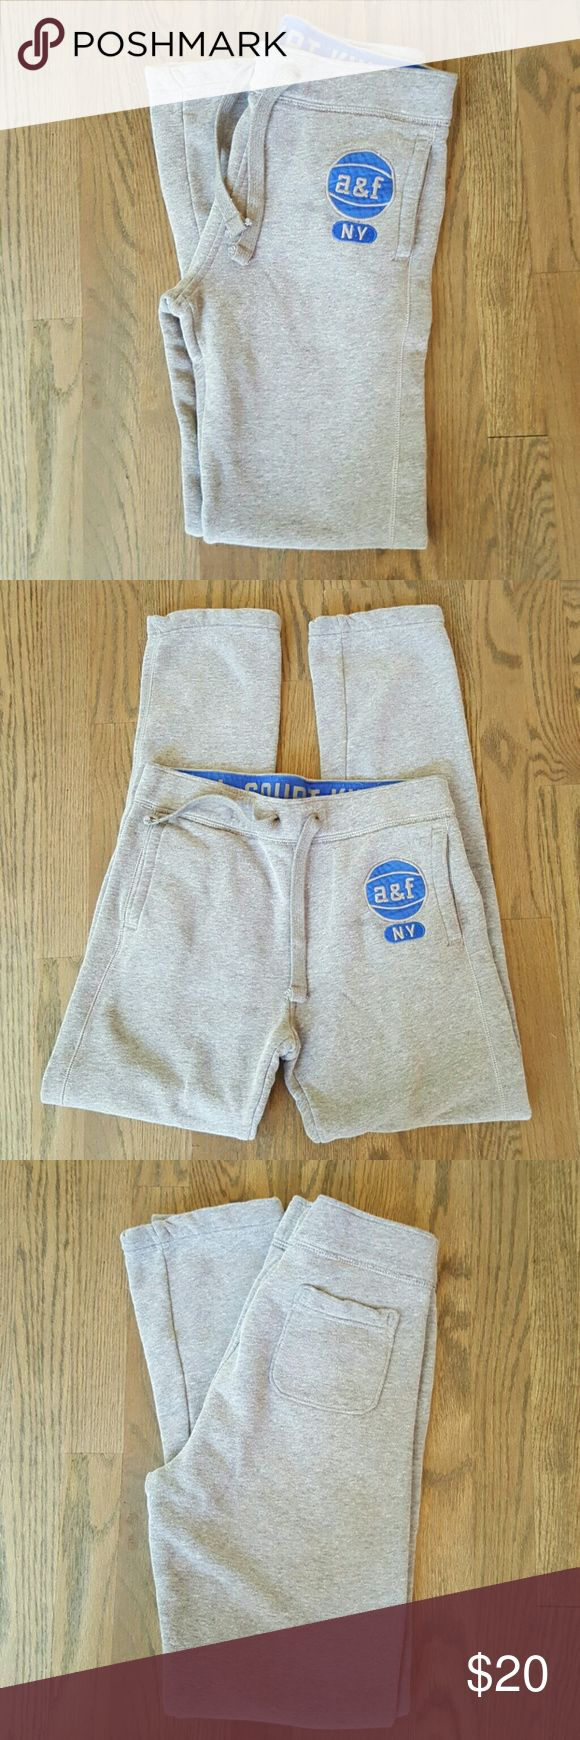 Boys Abercrombie Kids Basketball Logo Sweatpants Perfect for your full court king! VERY soft and cozy.  In pristine condition, have been washed with extreme care and line-dried dried only. abercrombie kids Bottoms Sweatpants & Joggers